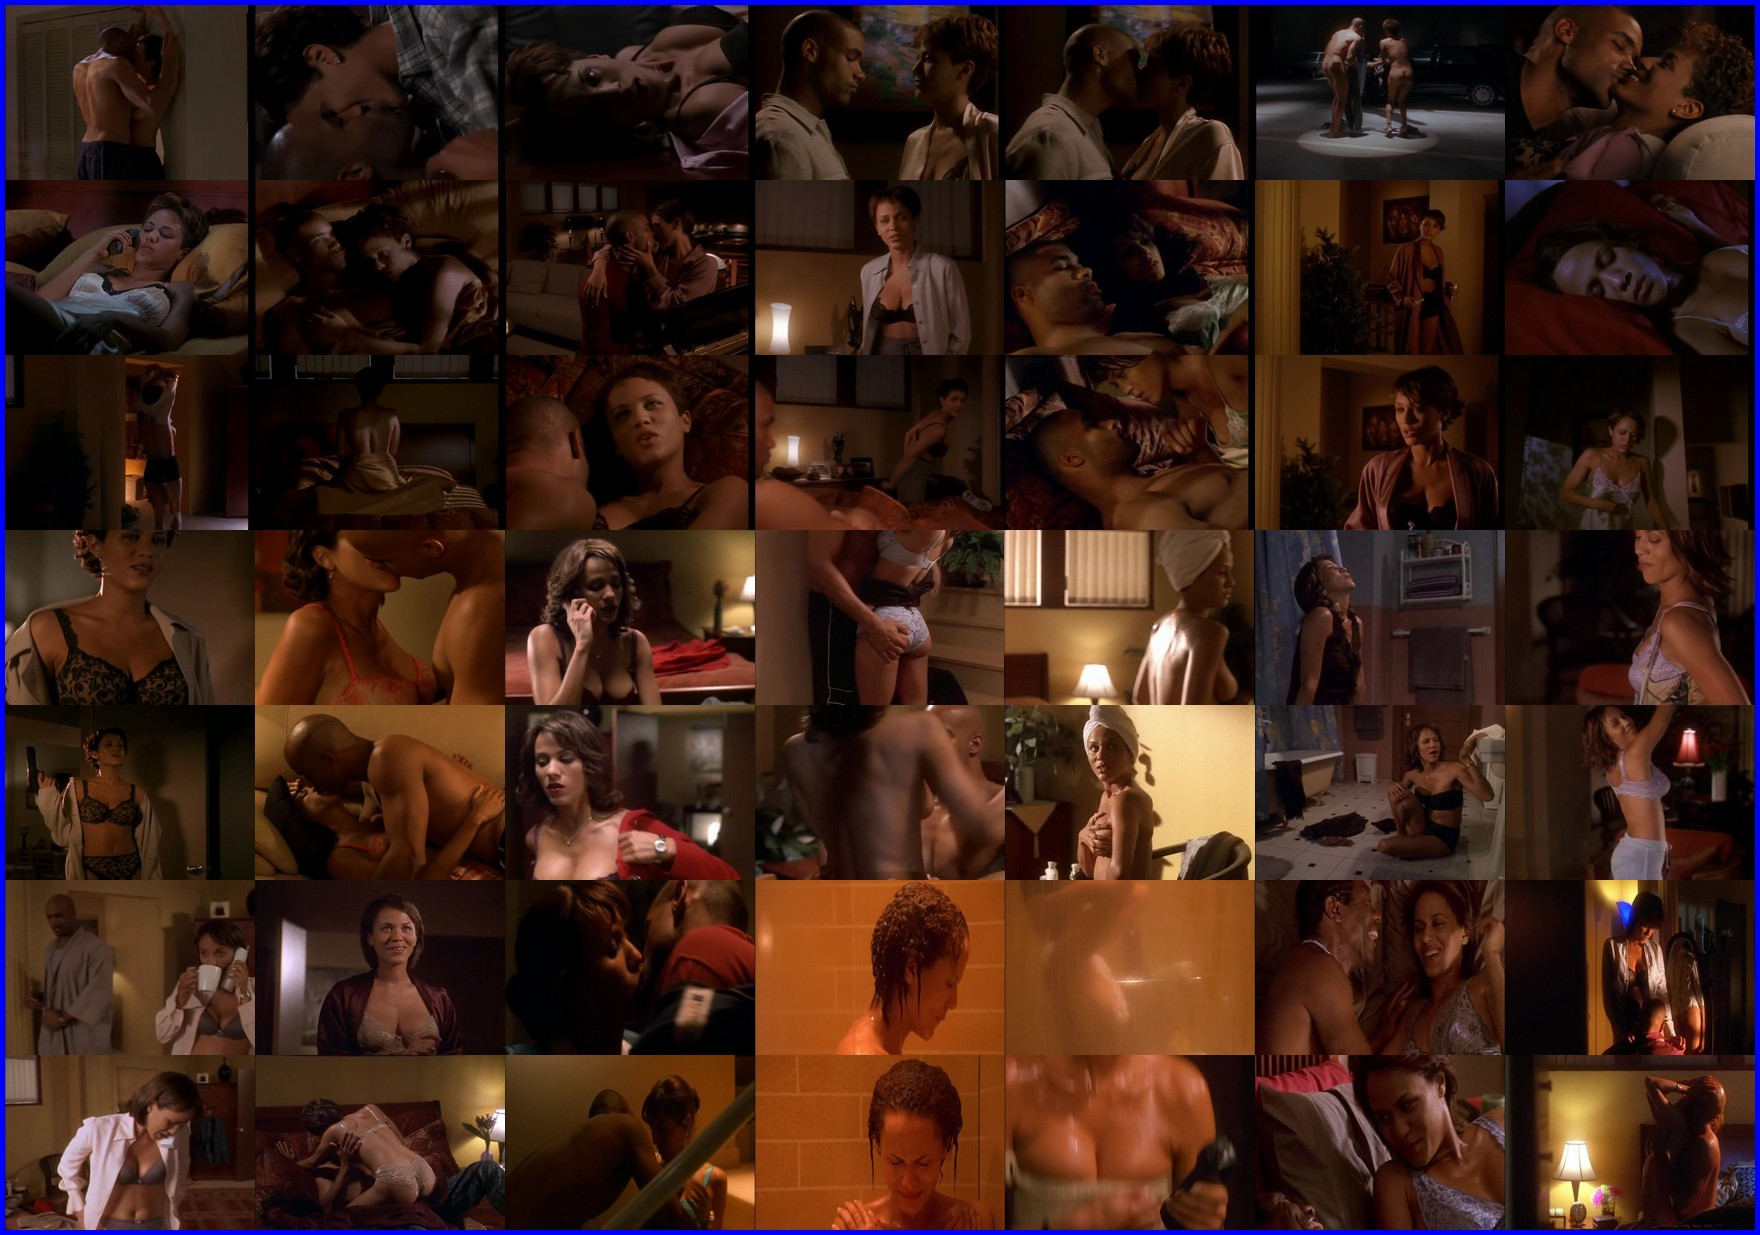 Nicole Ari Parker Breasts, Lesbian Scene In The Incredibly True Adventure Of Two Girls In Love